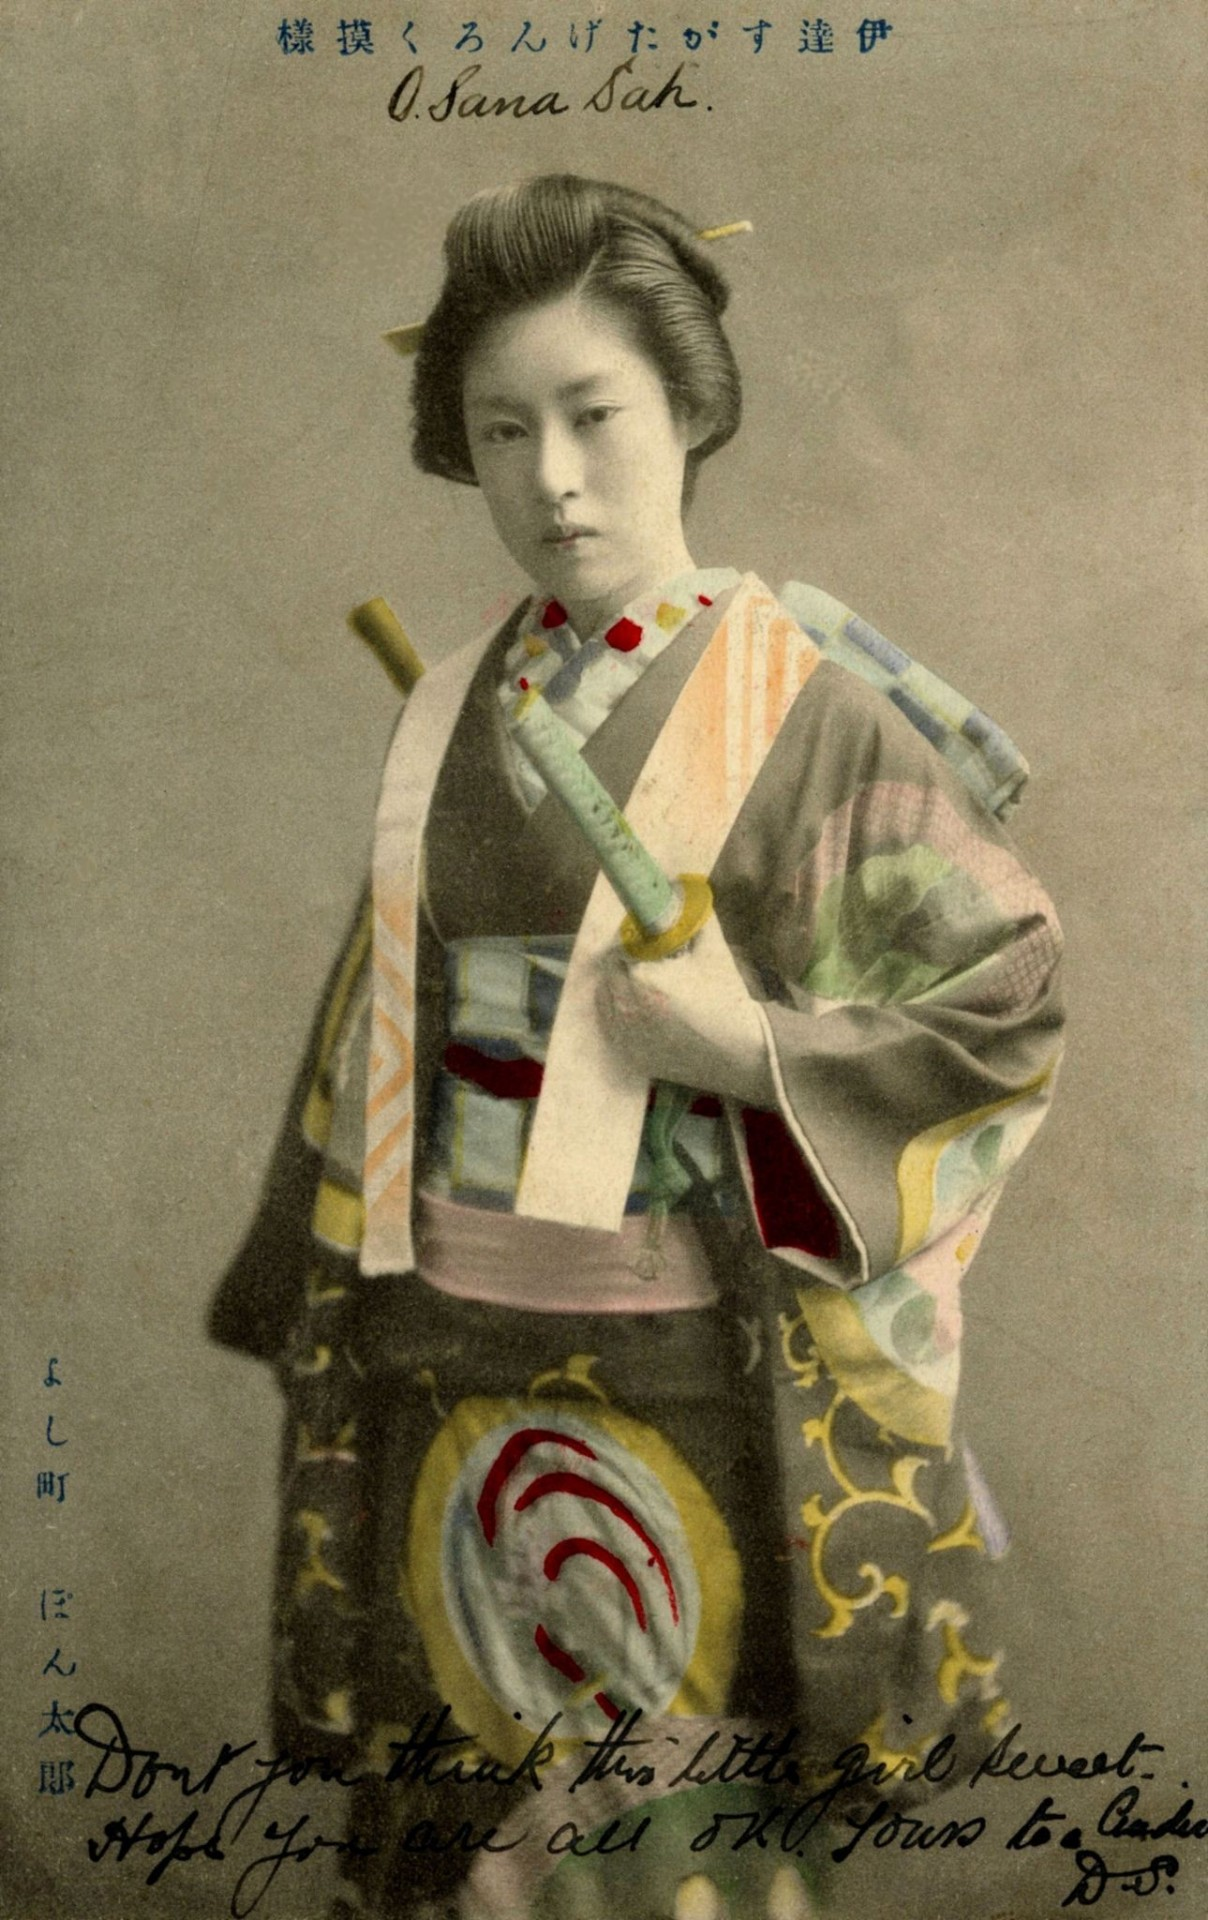 Another colorized picture of female samurai